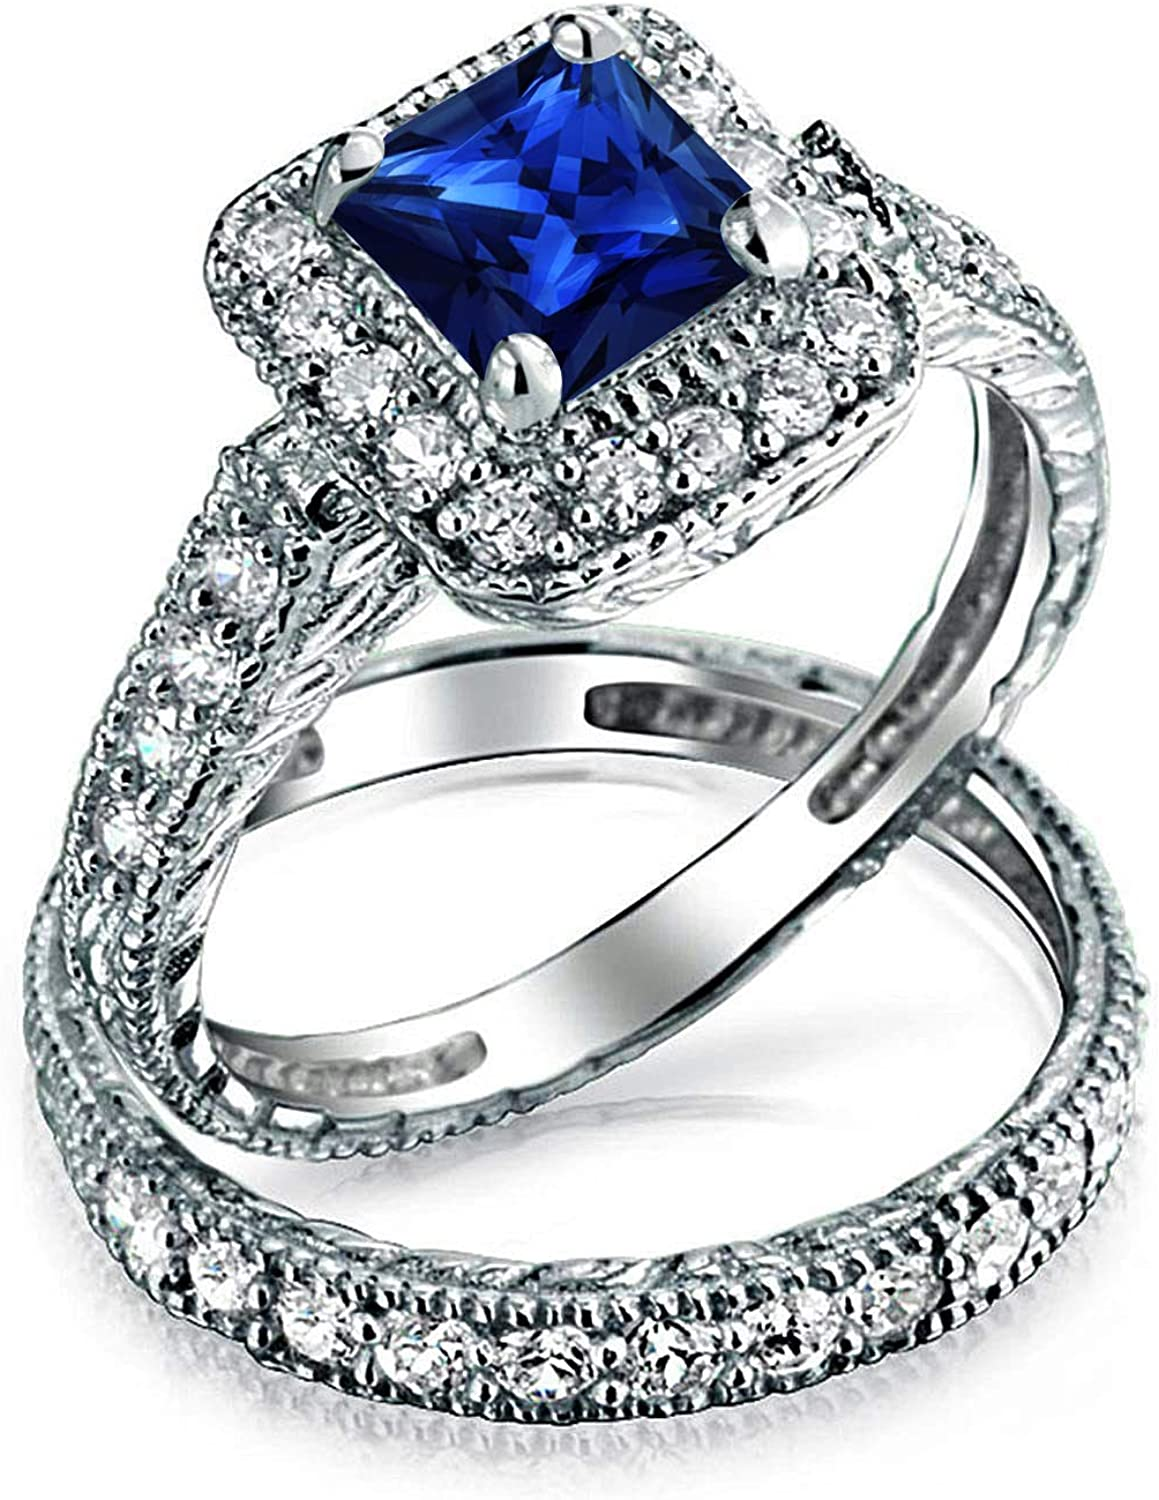 SVC-JEWELS 14k White Gold Plated 925 Sterling Silver Blue Sapphire Cluster Engagement Wedding Band Ring Mens